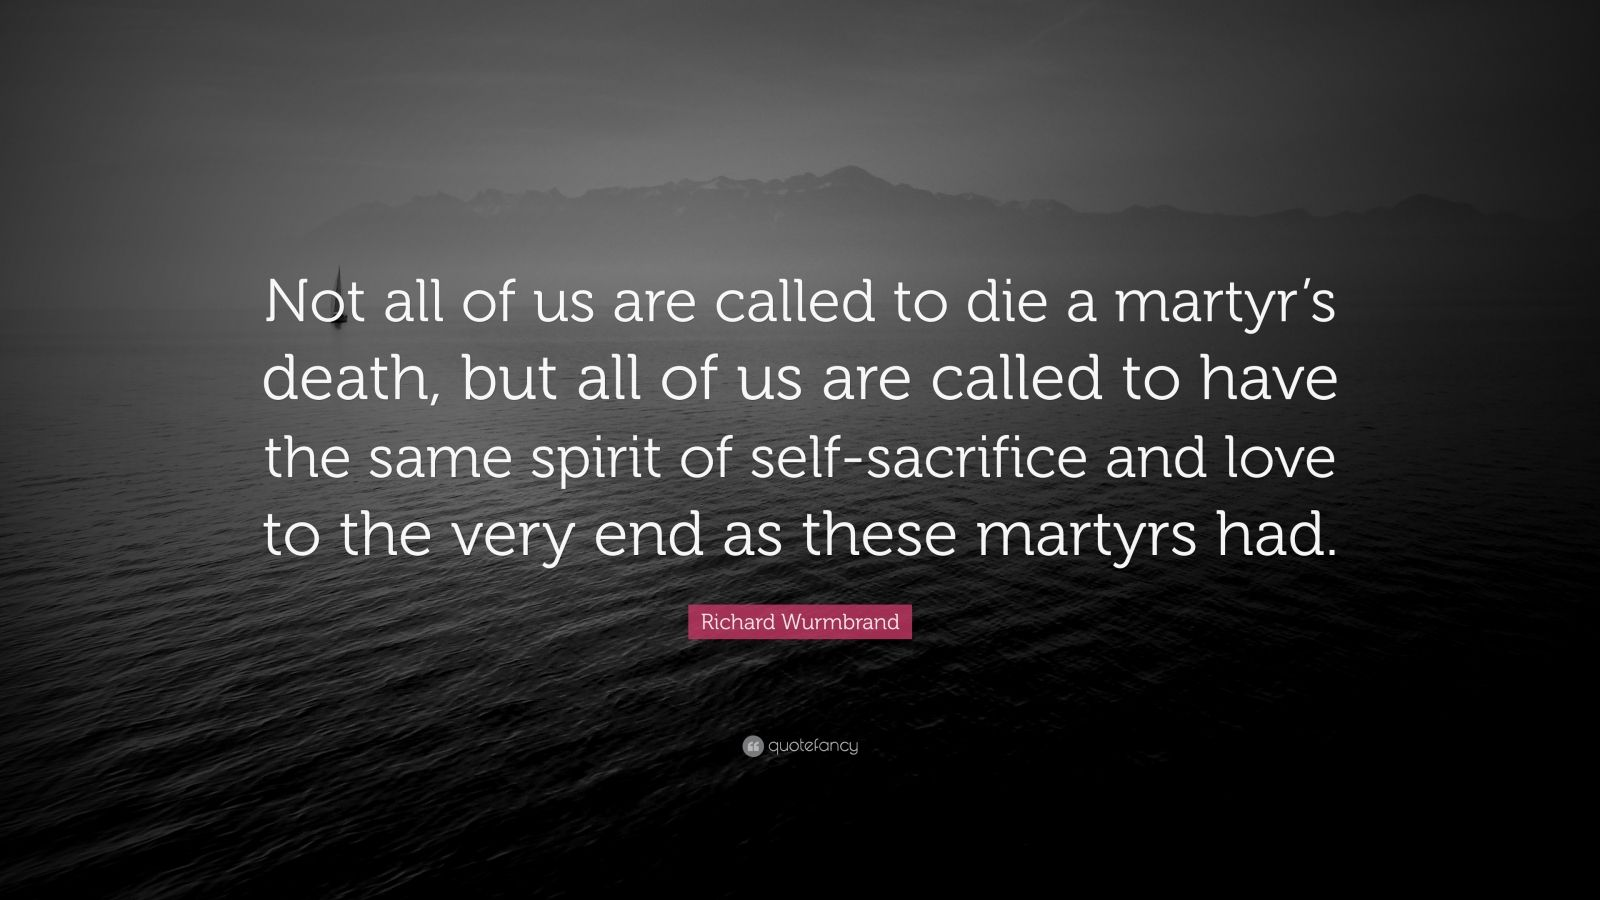 """Richard Wurmbrand Quote: """"Not all of us are called to die a martyr's death, but all of us are called to have the same spirit of self-sacrifice and love to the very end as these martyrs had."""""""